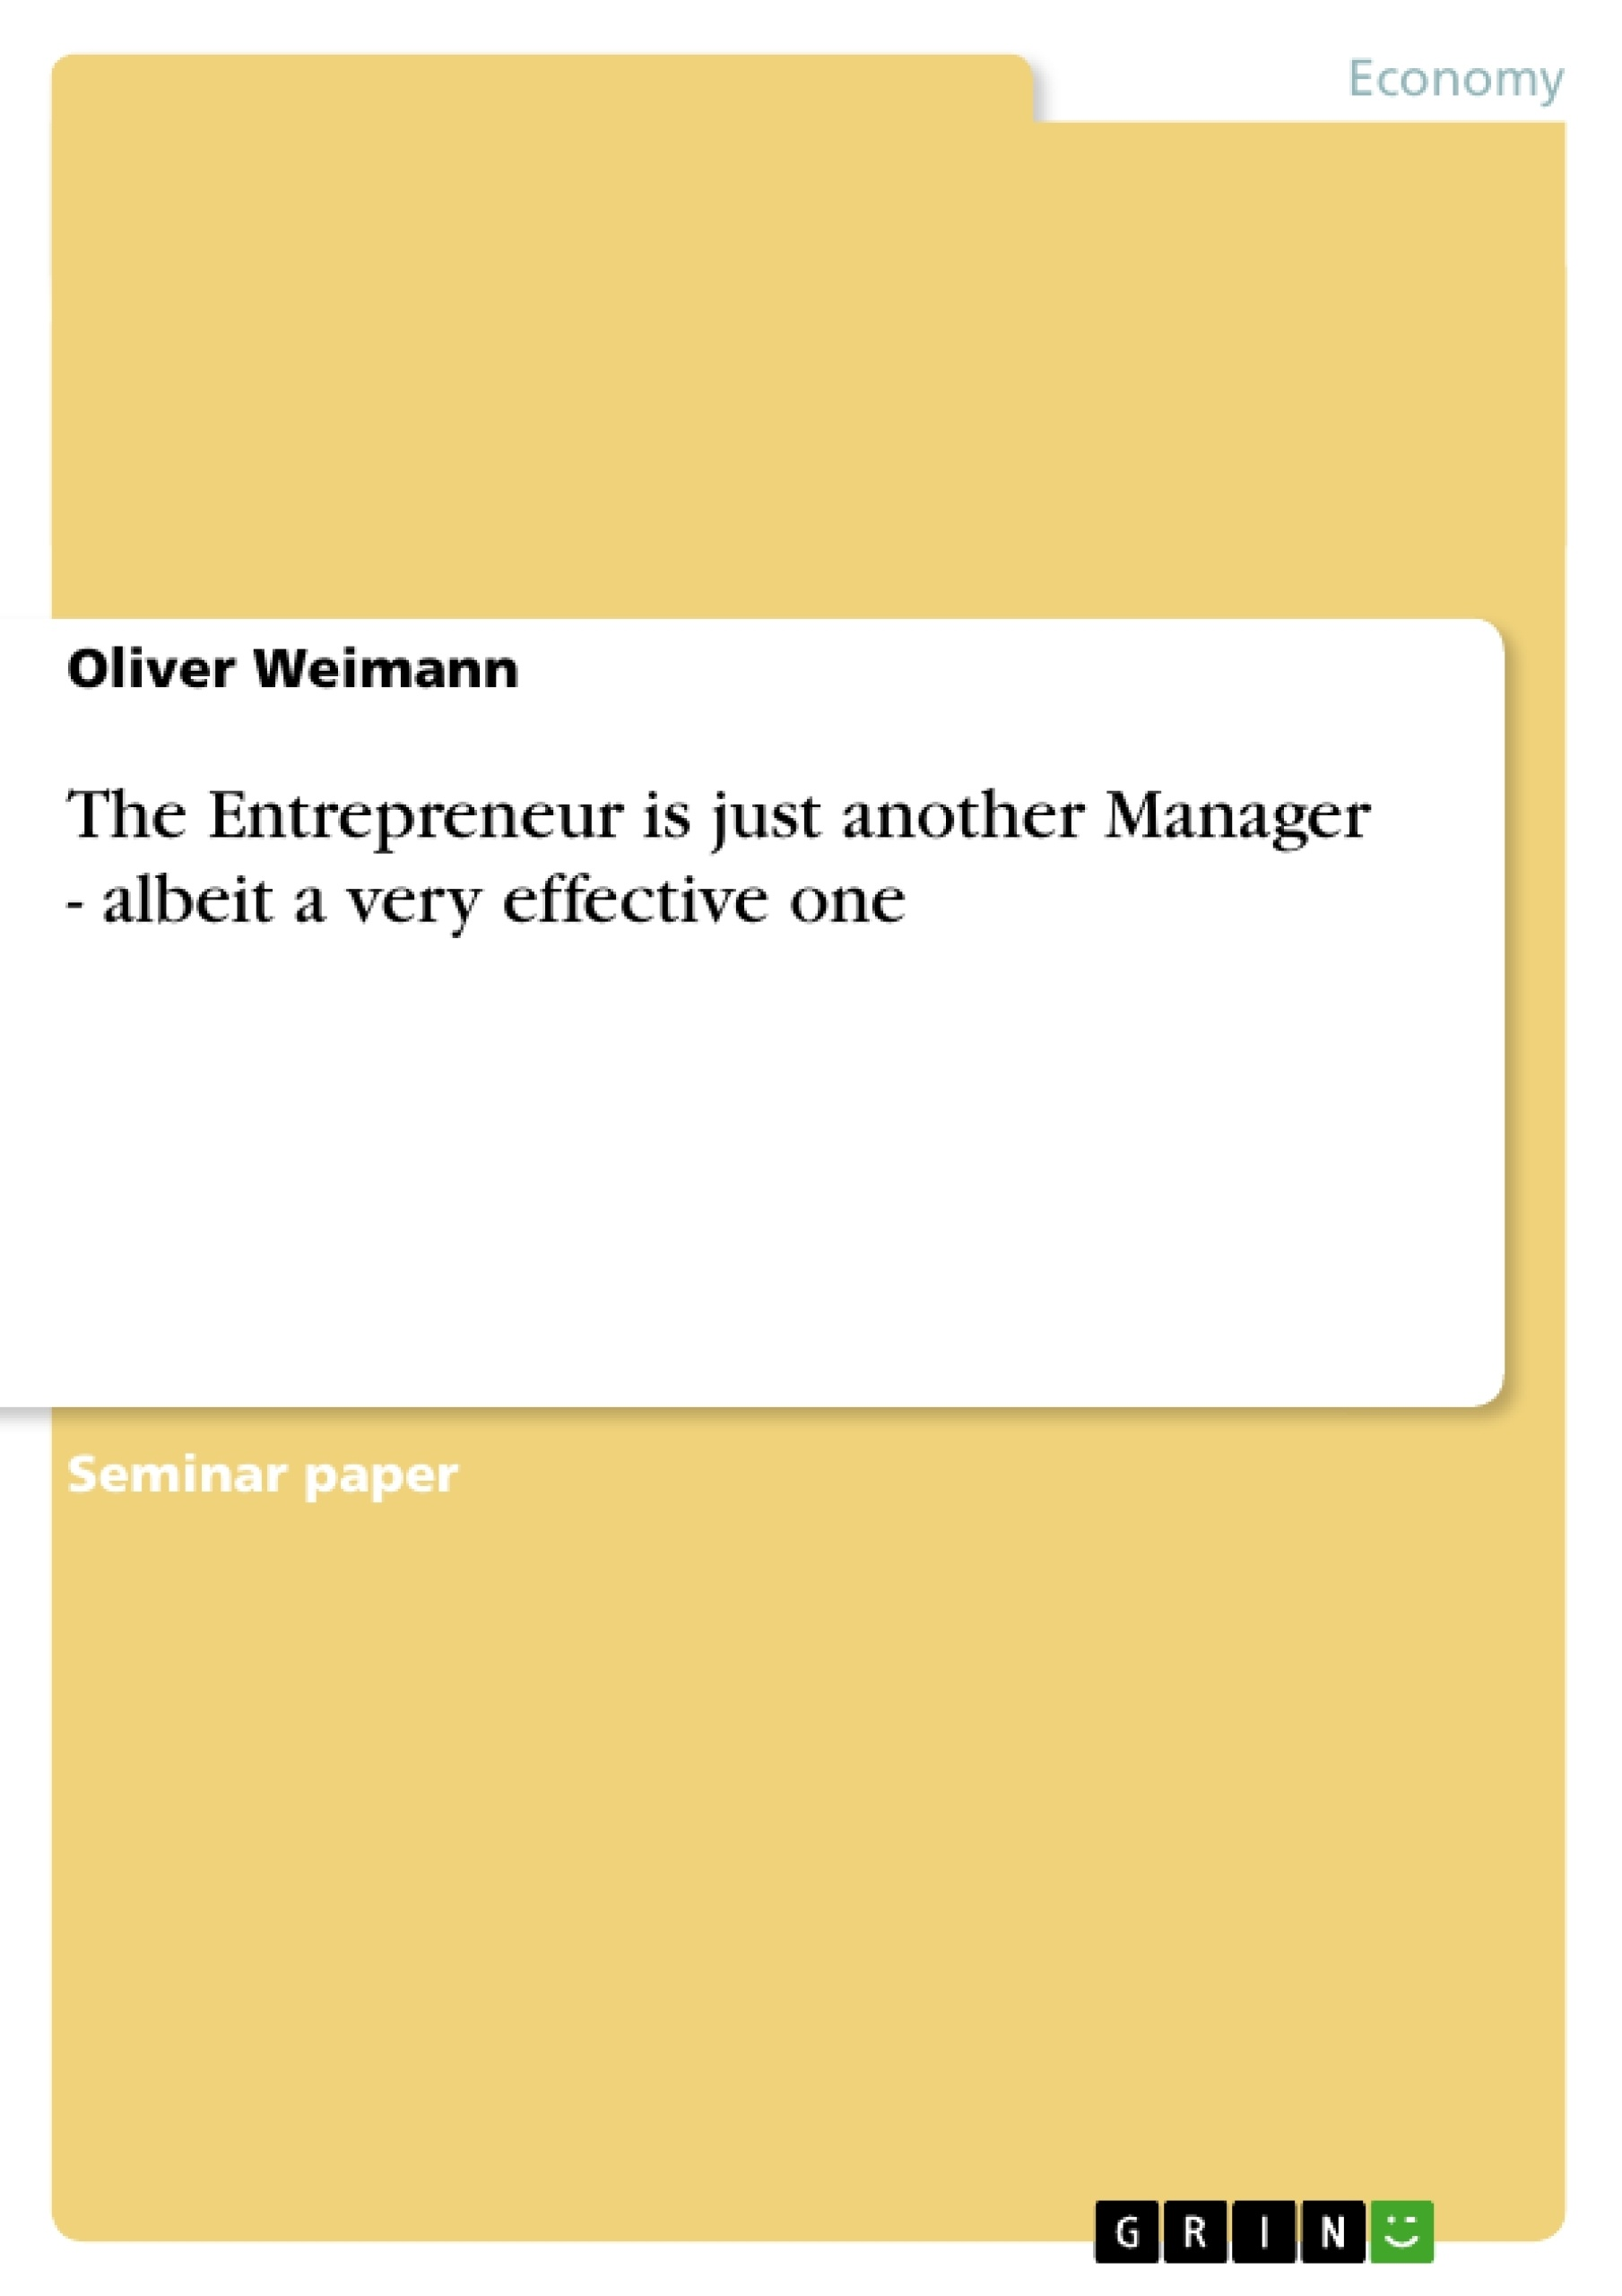 Title: The Entrepreneur is just another Manager - albeit a very effective one